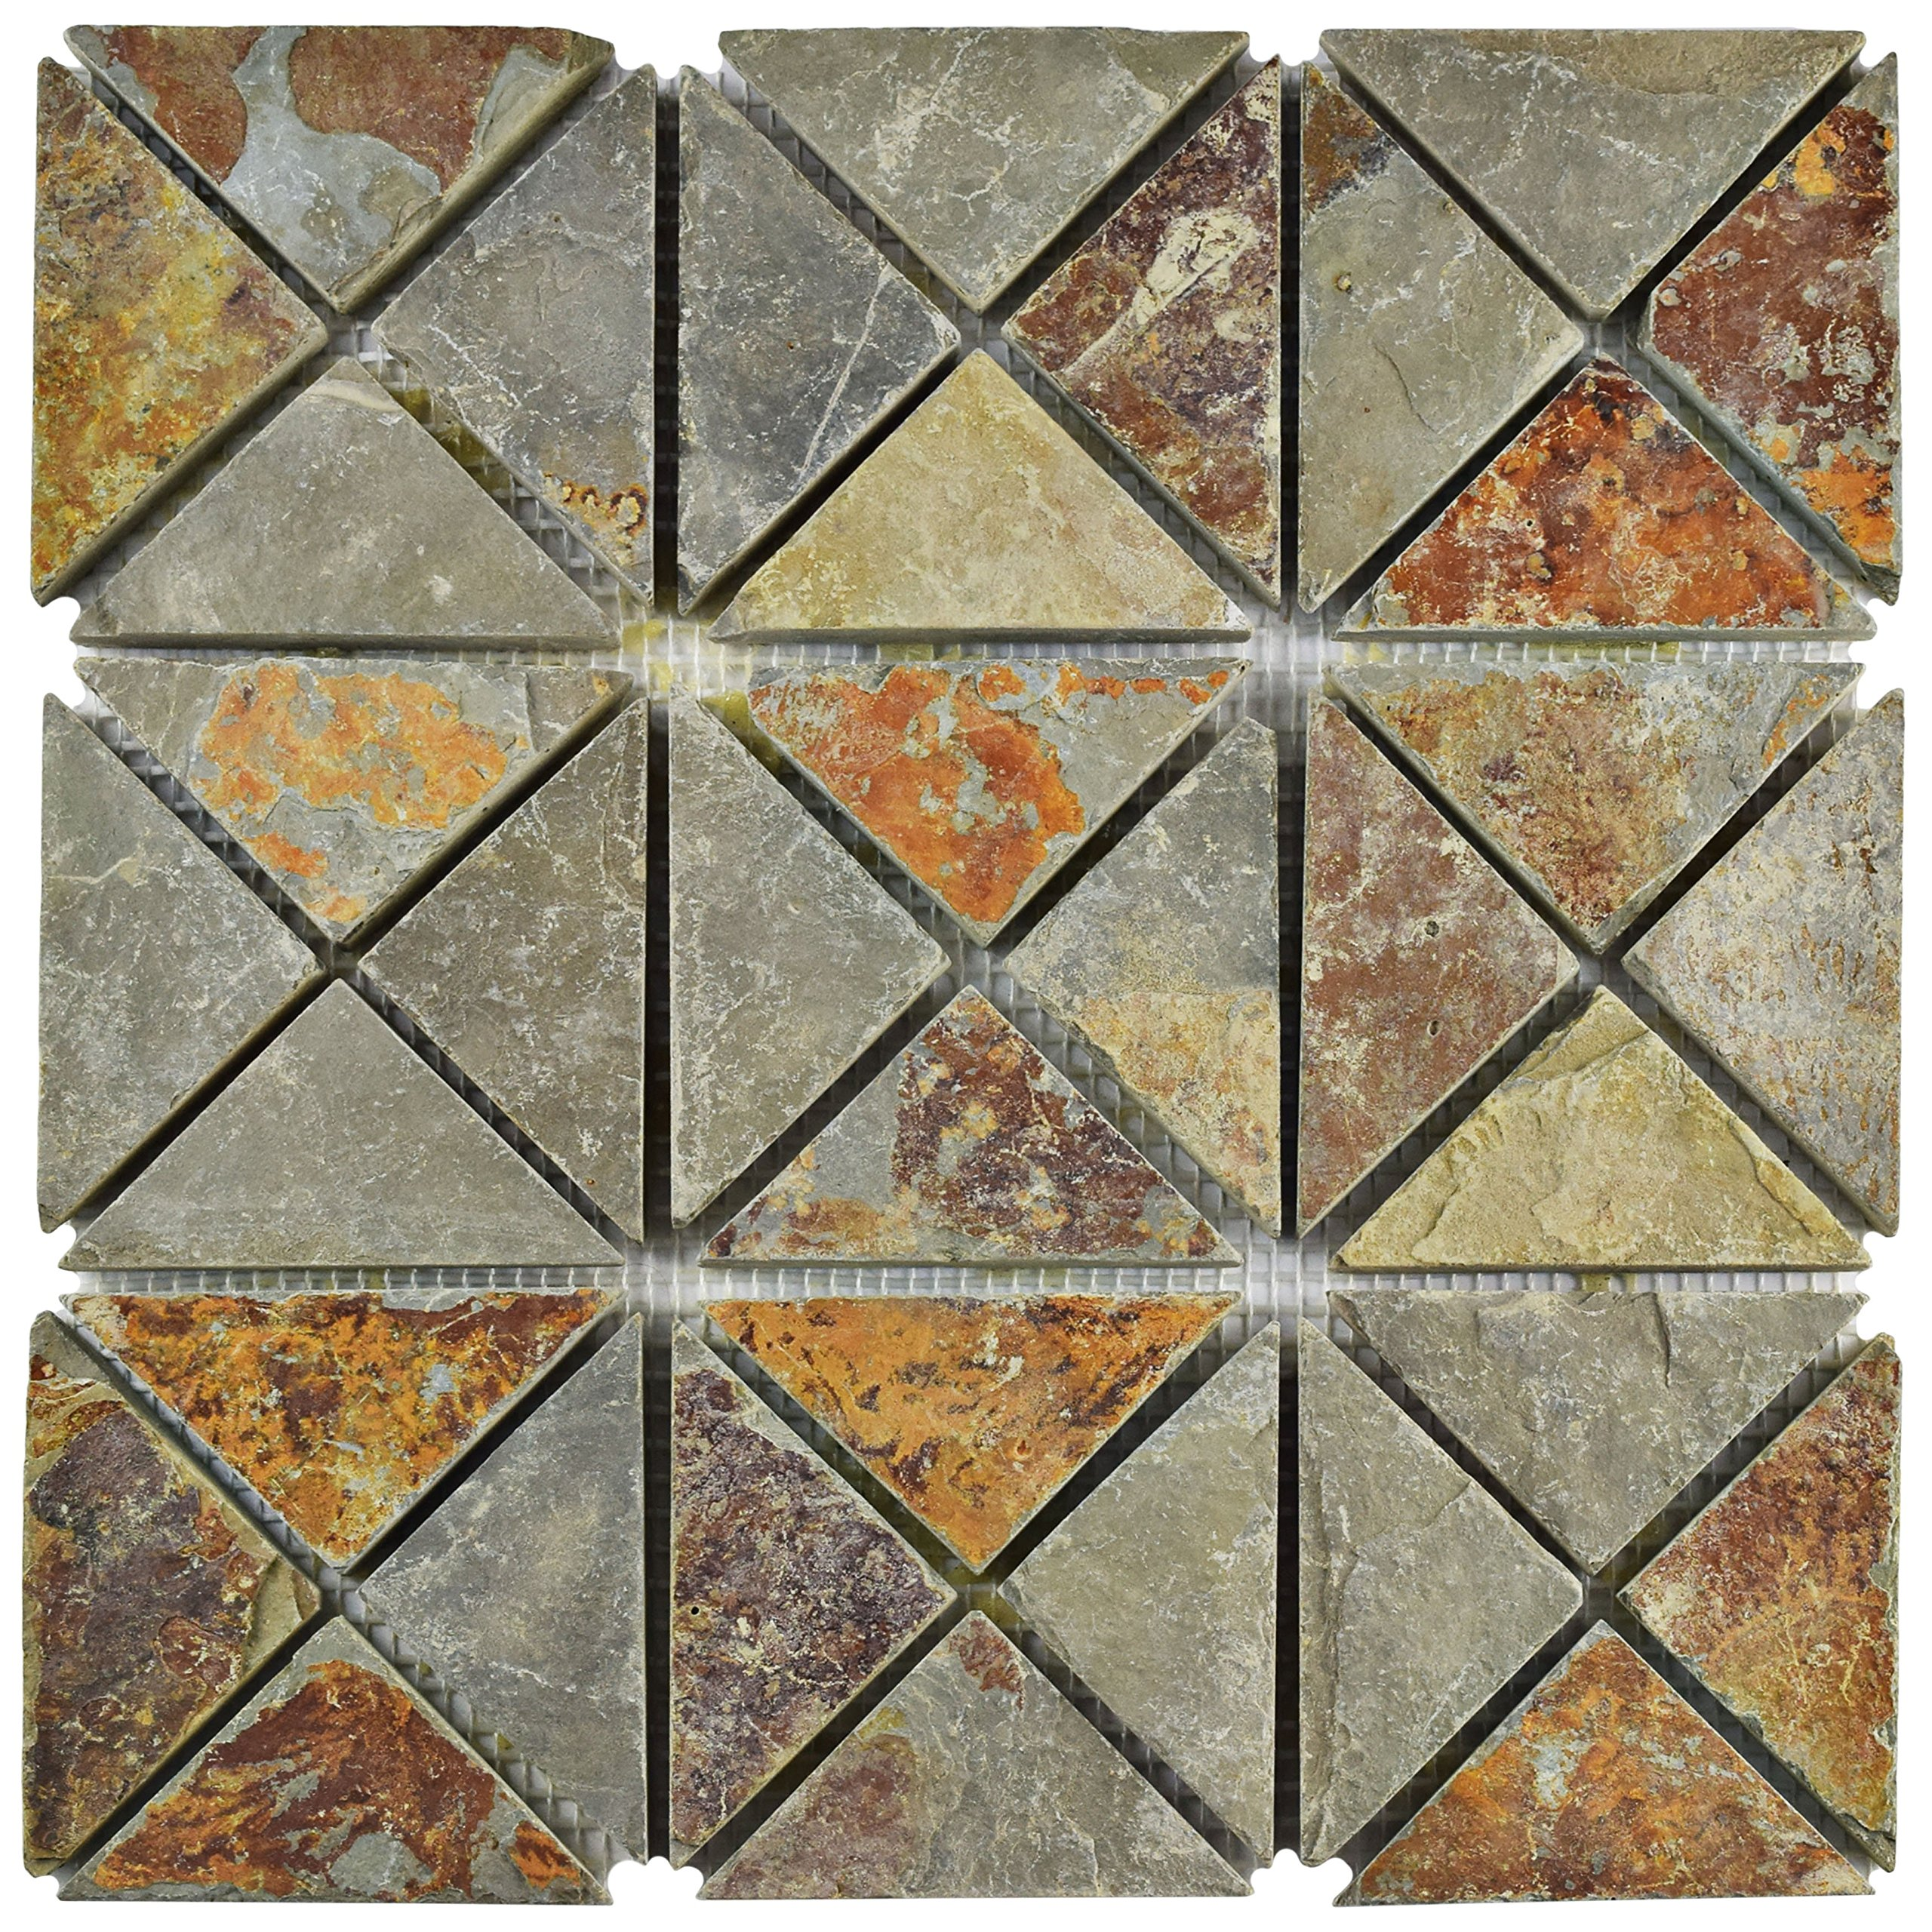 SomerTile SCRTSSS Cliff TriSquare Sunset Slate Natural Stone Mosaic Floor and Wall Tile, 12'' x 12'', Grey/Brown/Red/Orange/Green by SOMERTILE